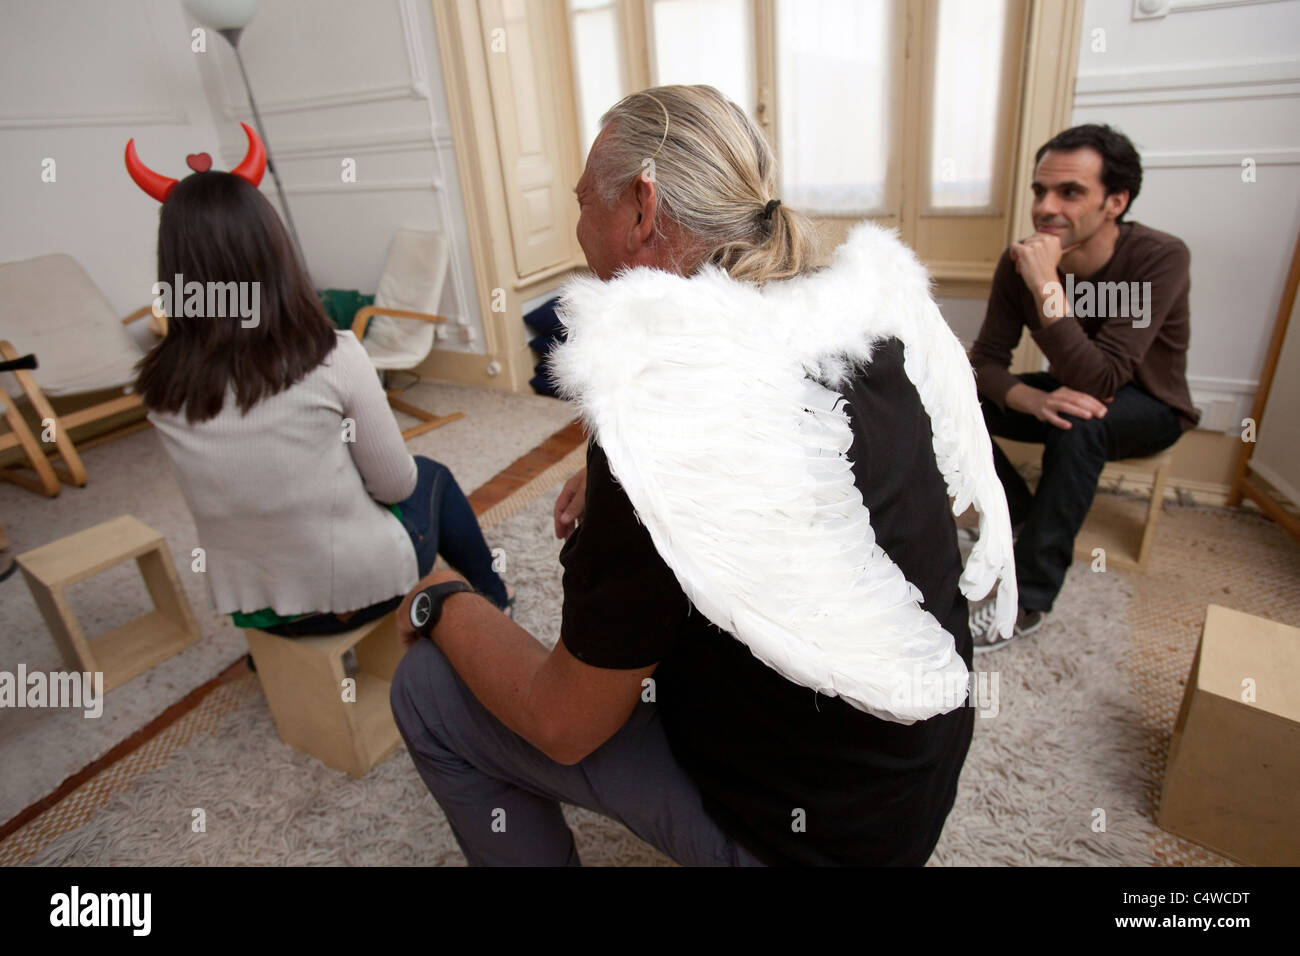 Psychodrama therapy session with man and woman playing the role of devil and angel. - Stock Image